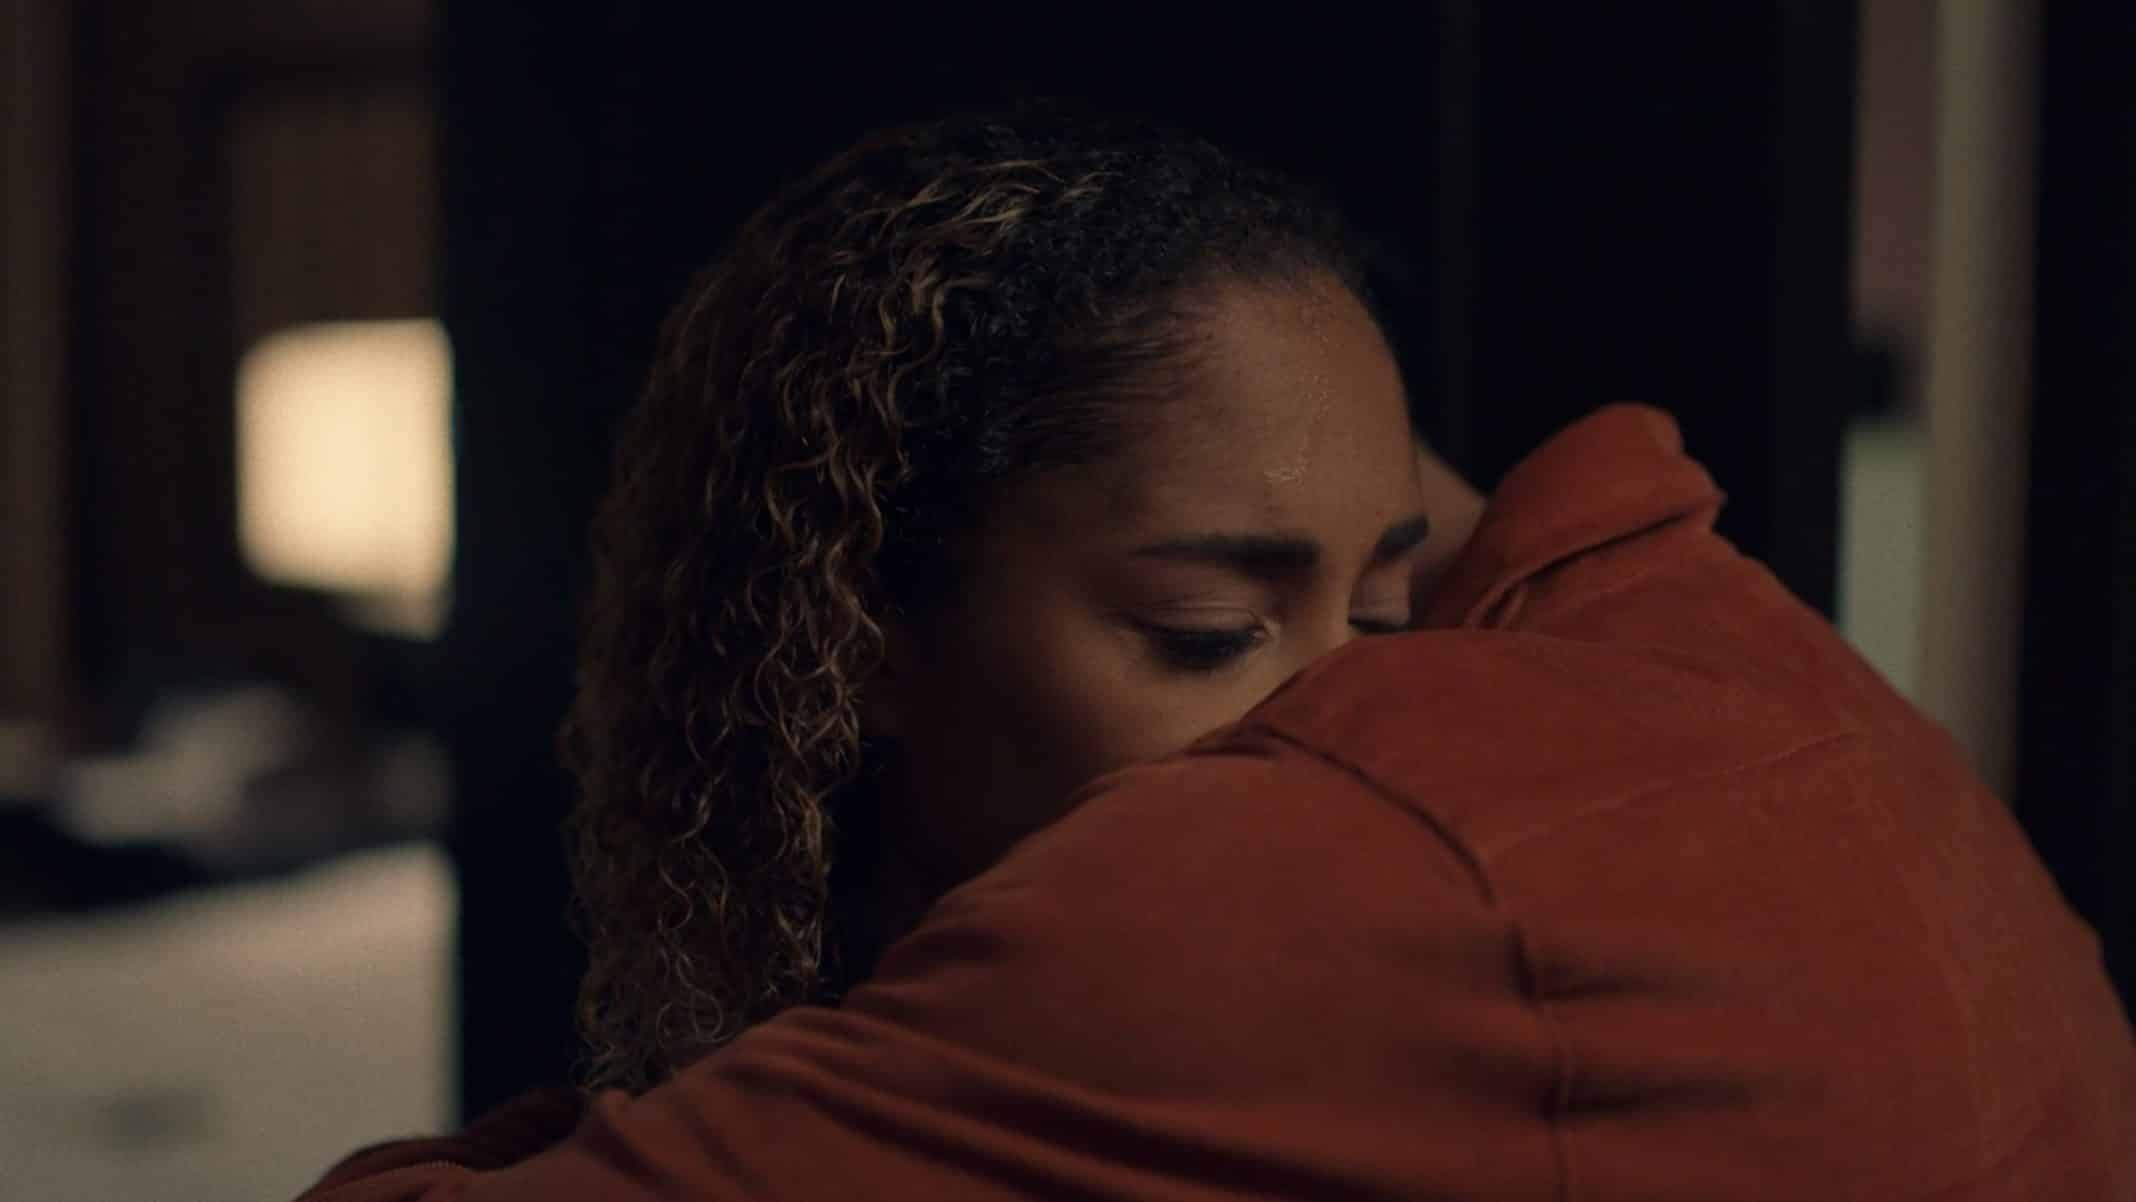 Tiffany being embraced by Derek after apologizing profusely.